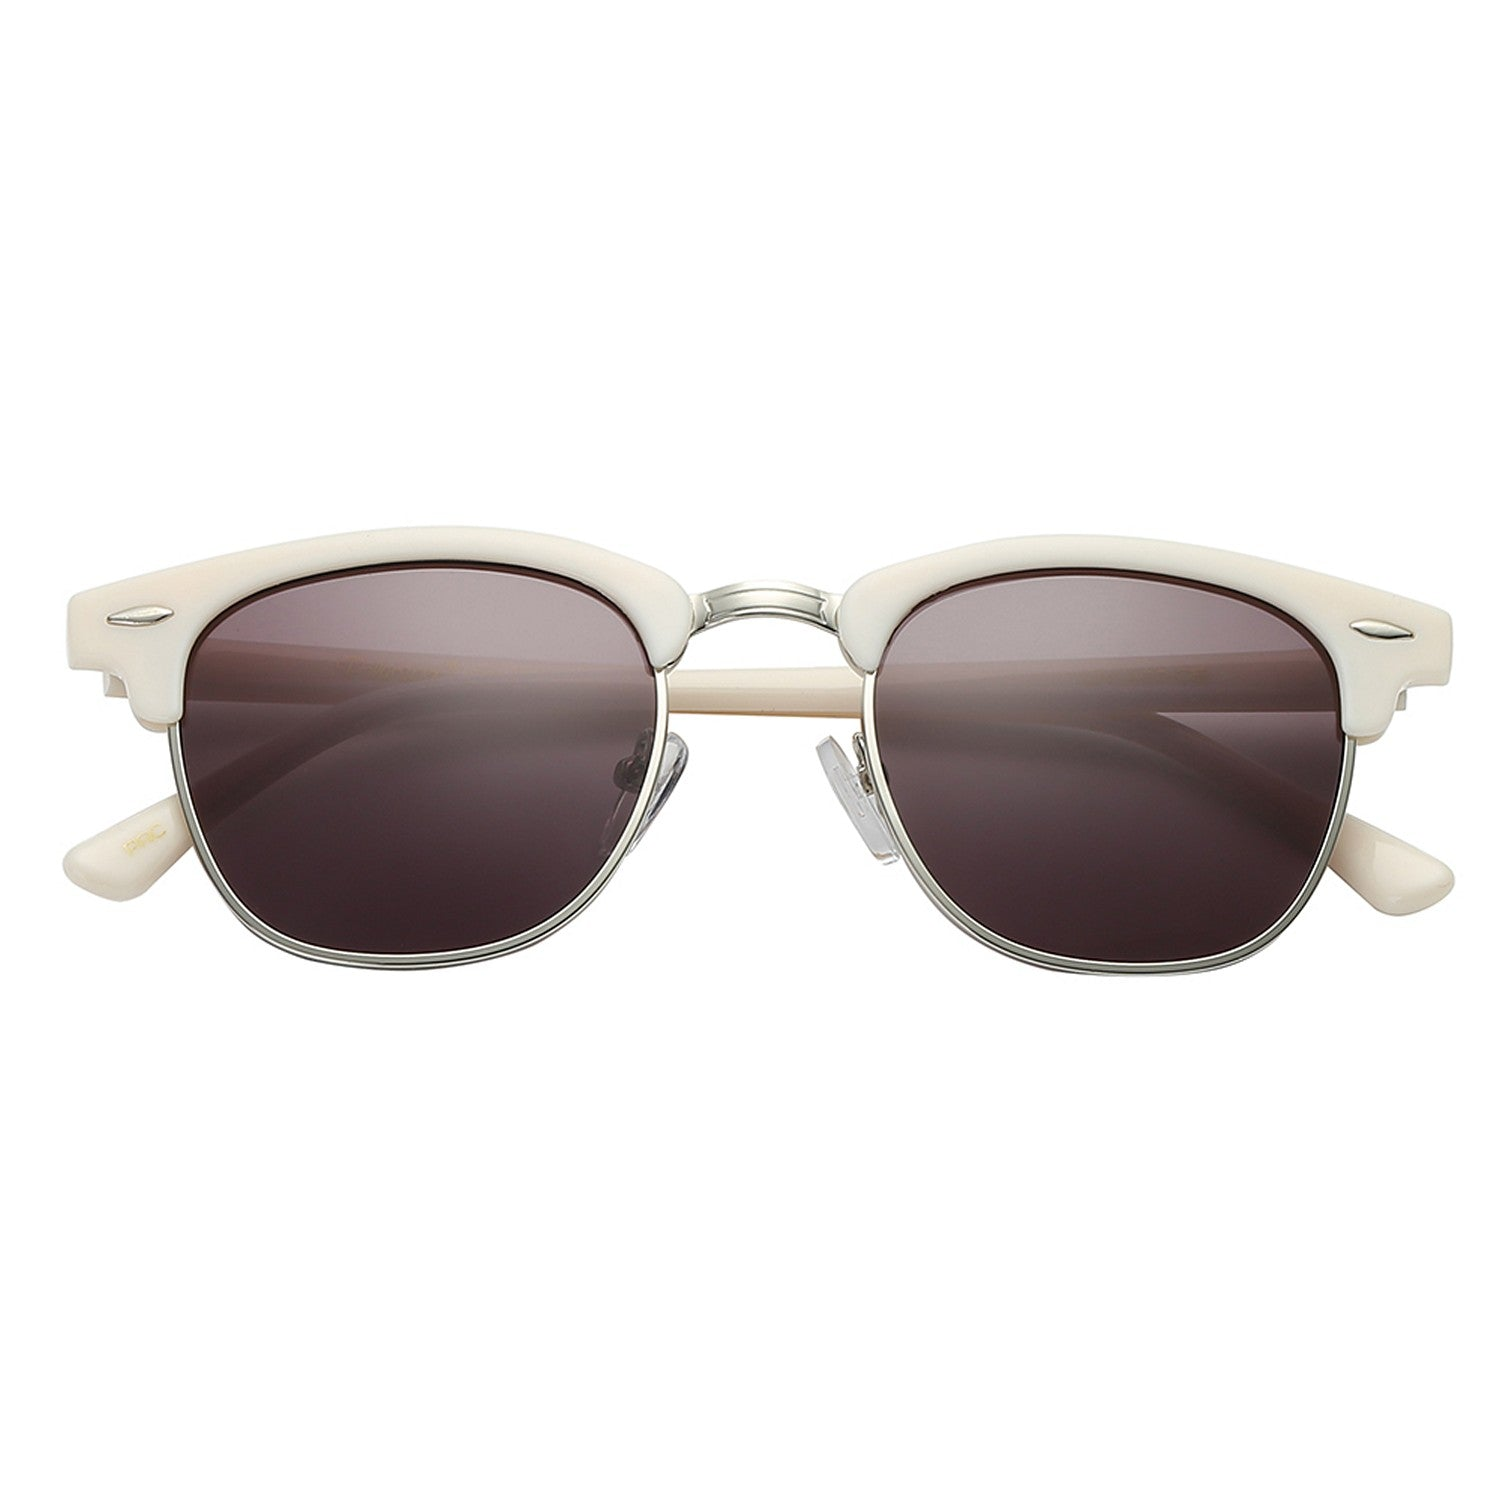 Polarspex Polarized Malcom Half Frame Semi-Rimless Style Unisex Sunglasses with Vanilla Beige Frames and Ash Smoke Lenses